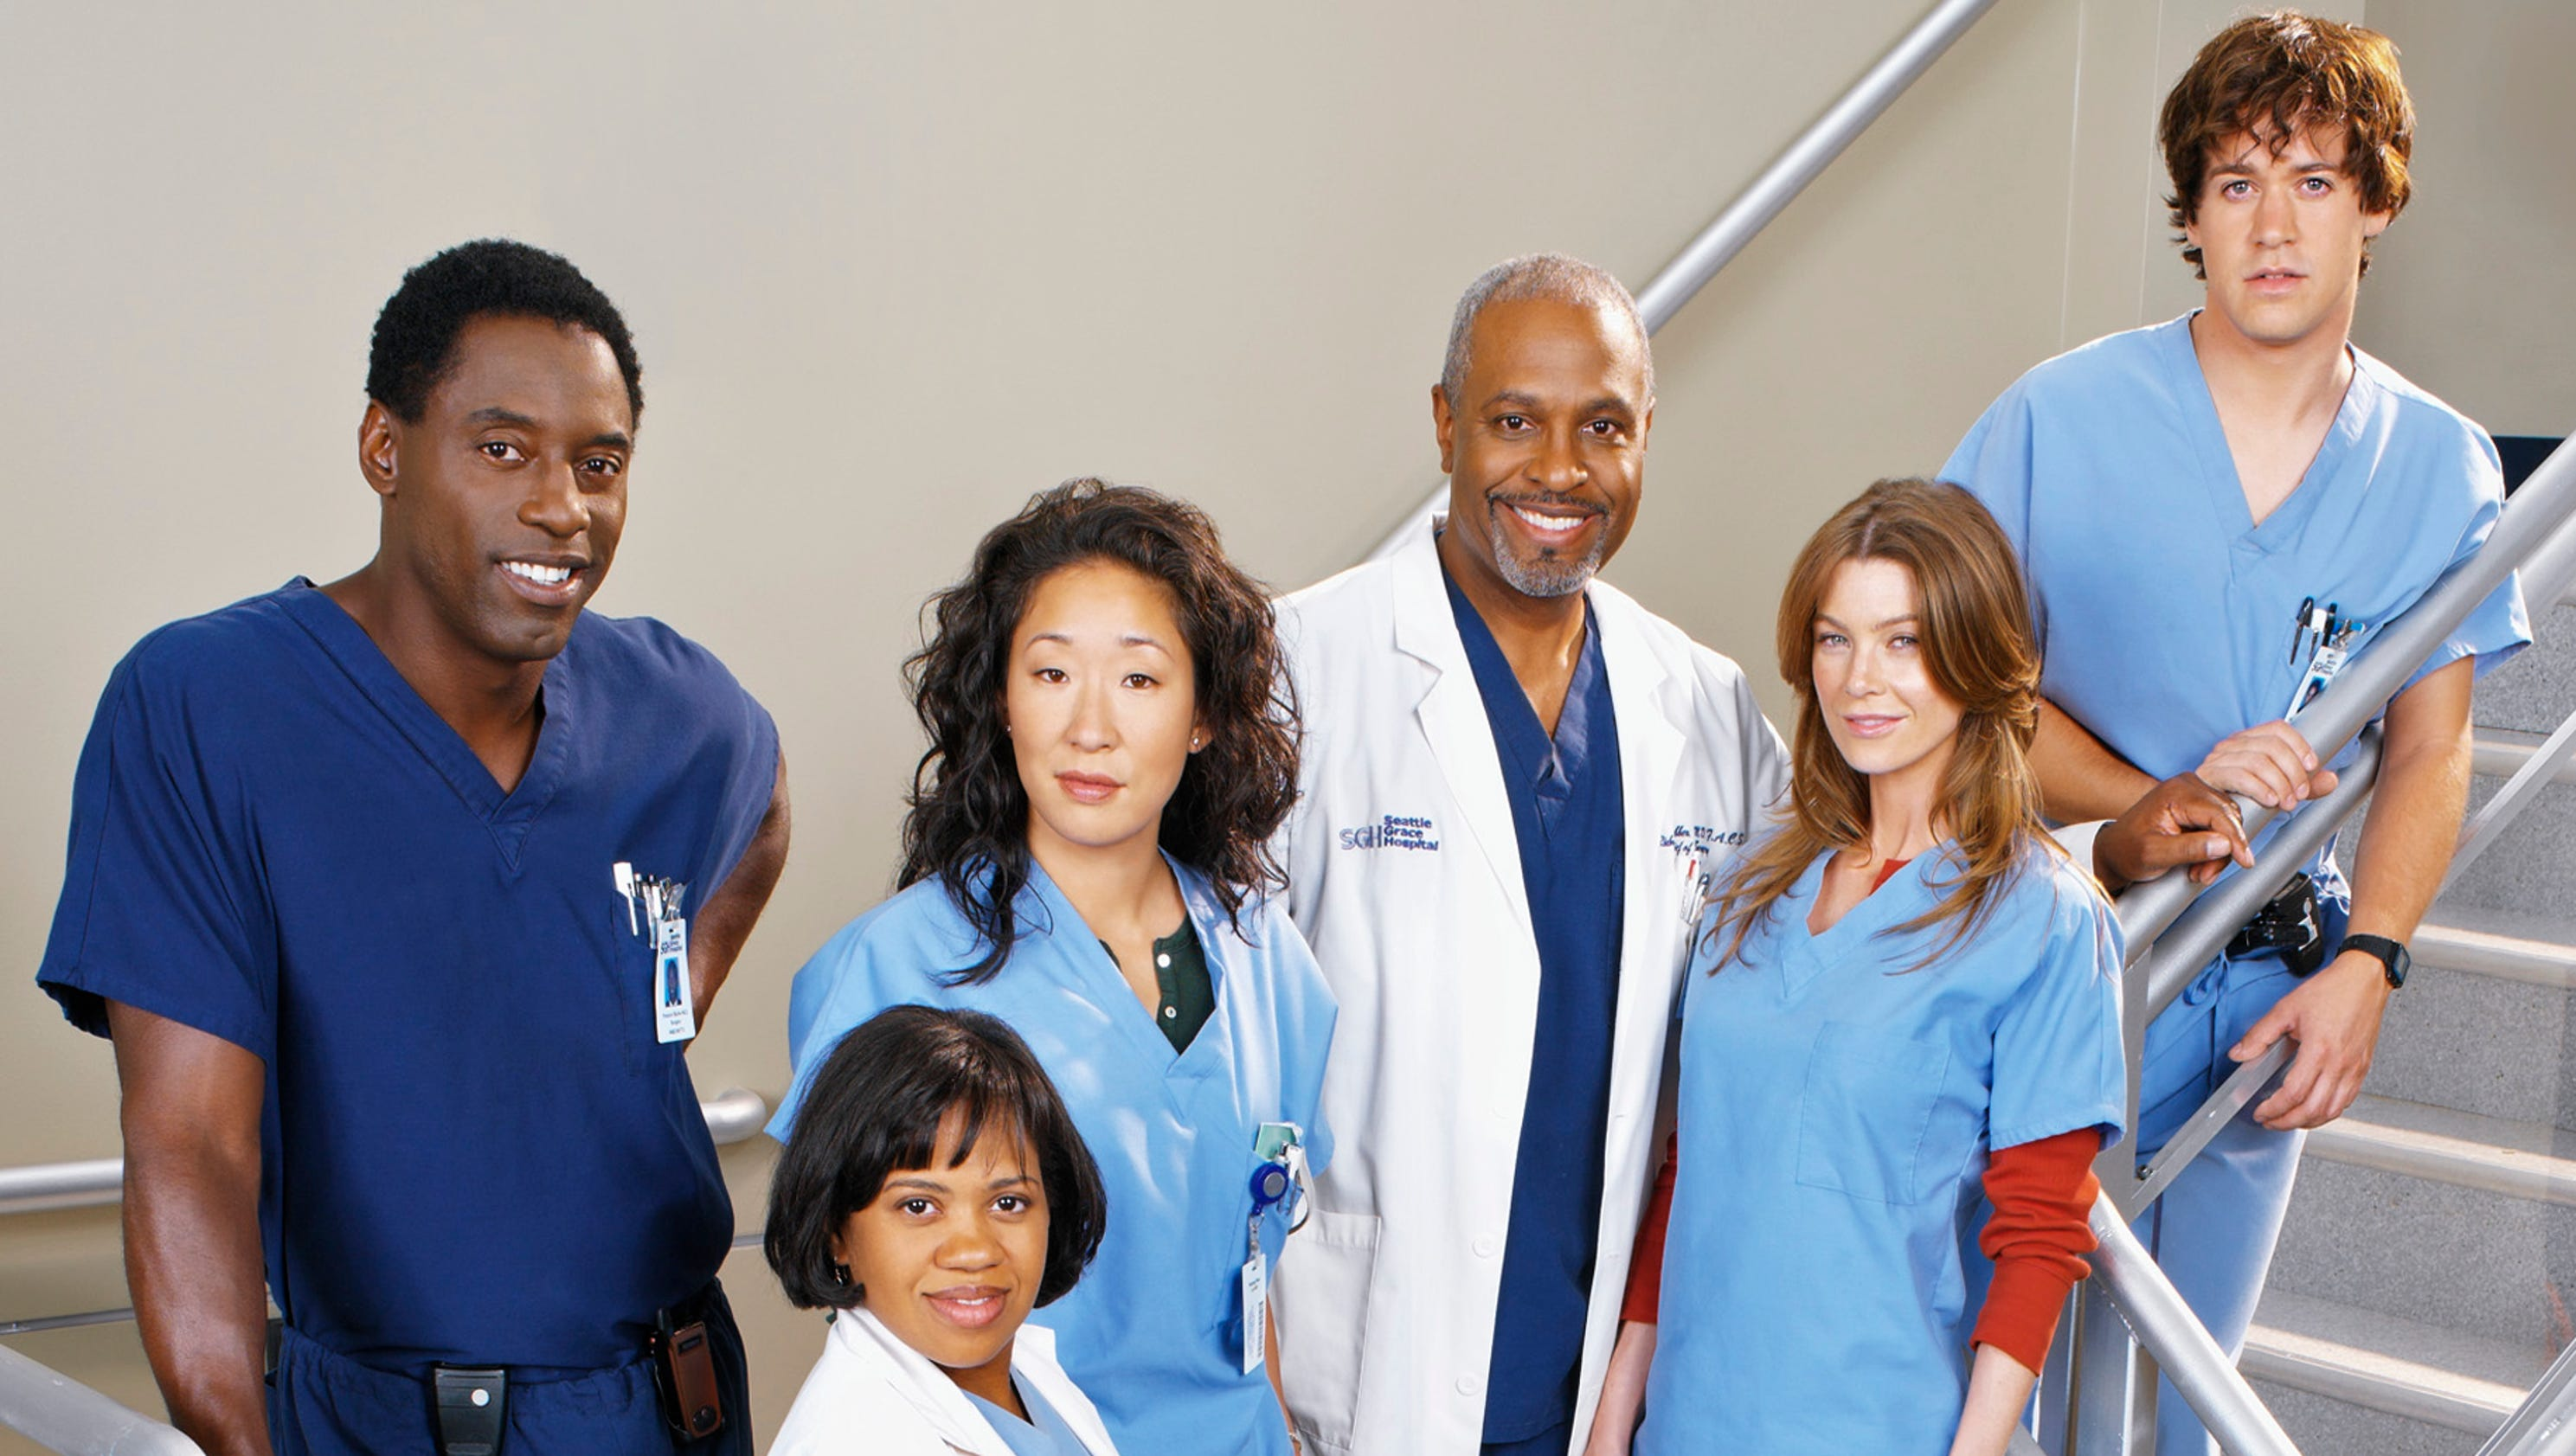 'Grey's Anatomy' cast: Where are they now?